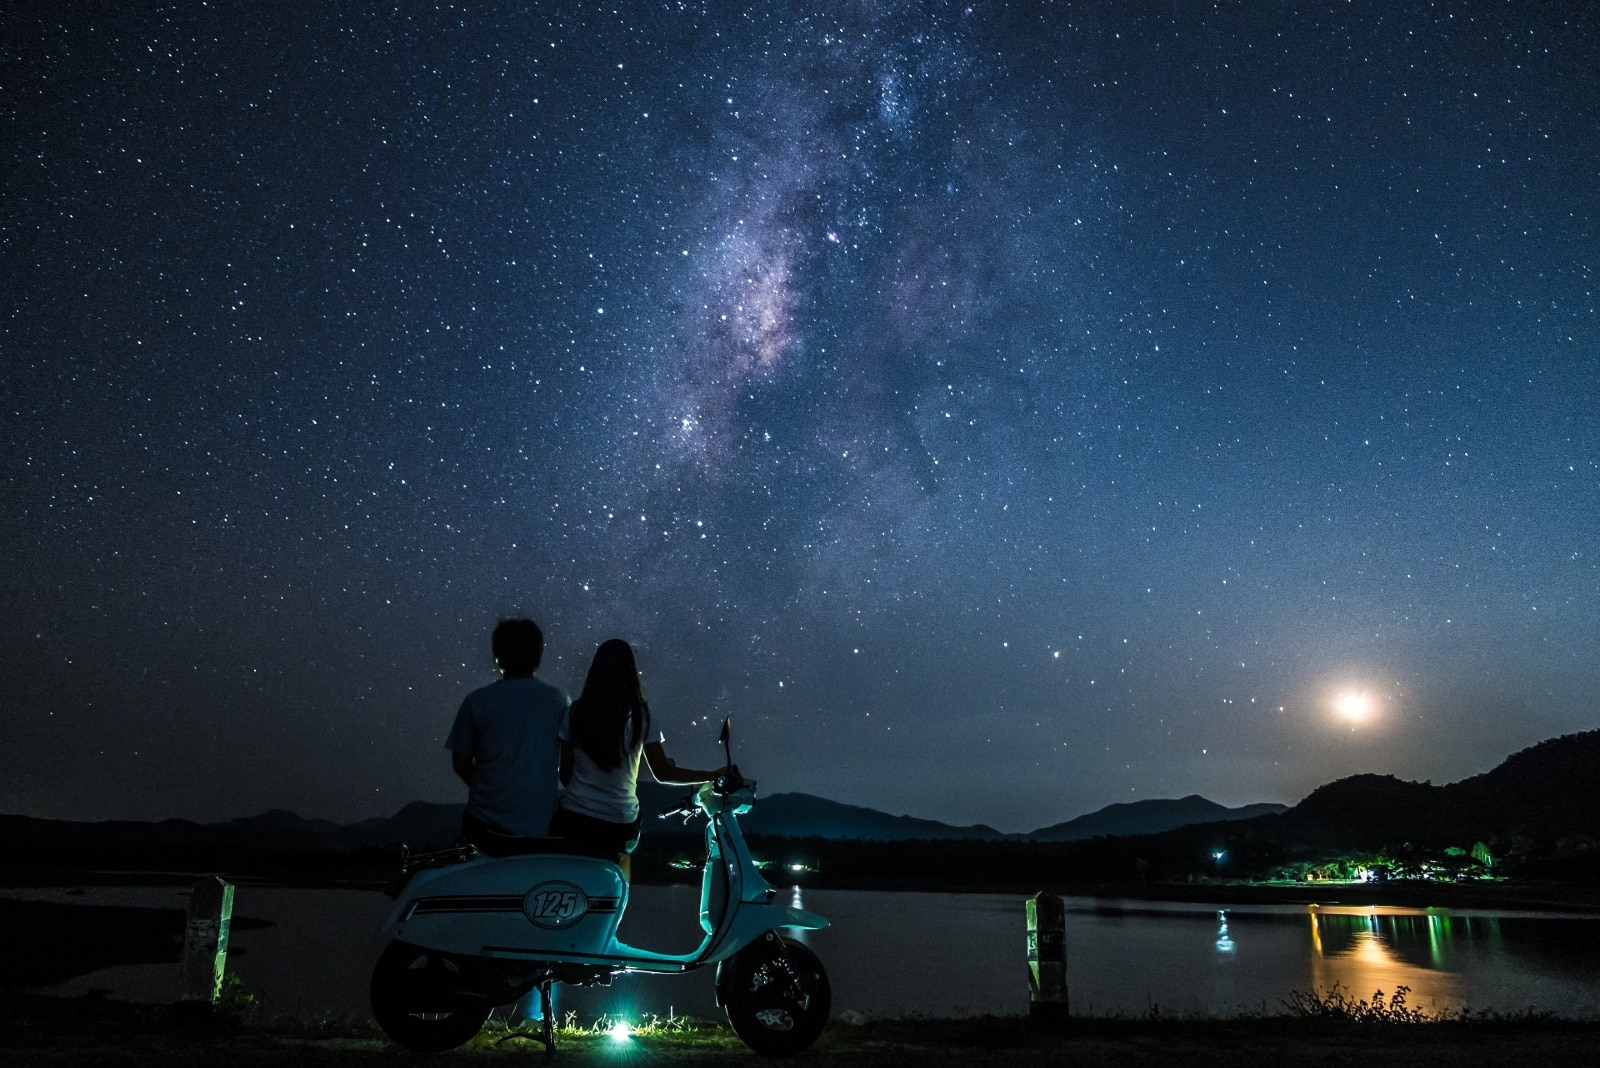 man and woman sitting on motorcycle looking at stars